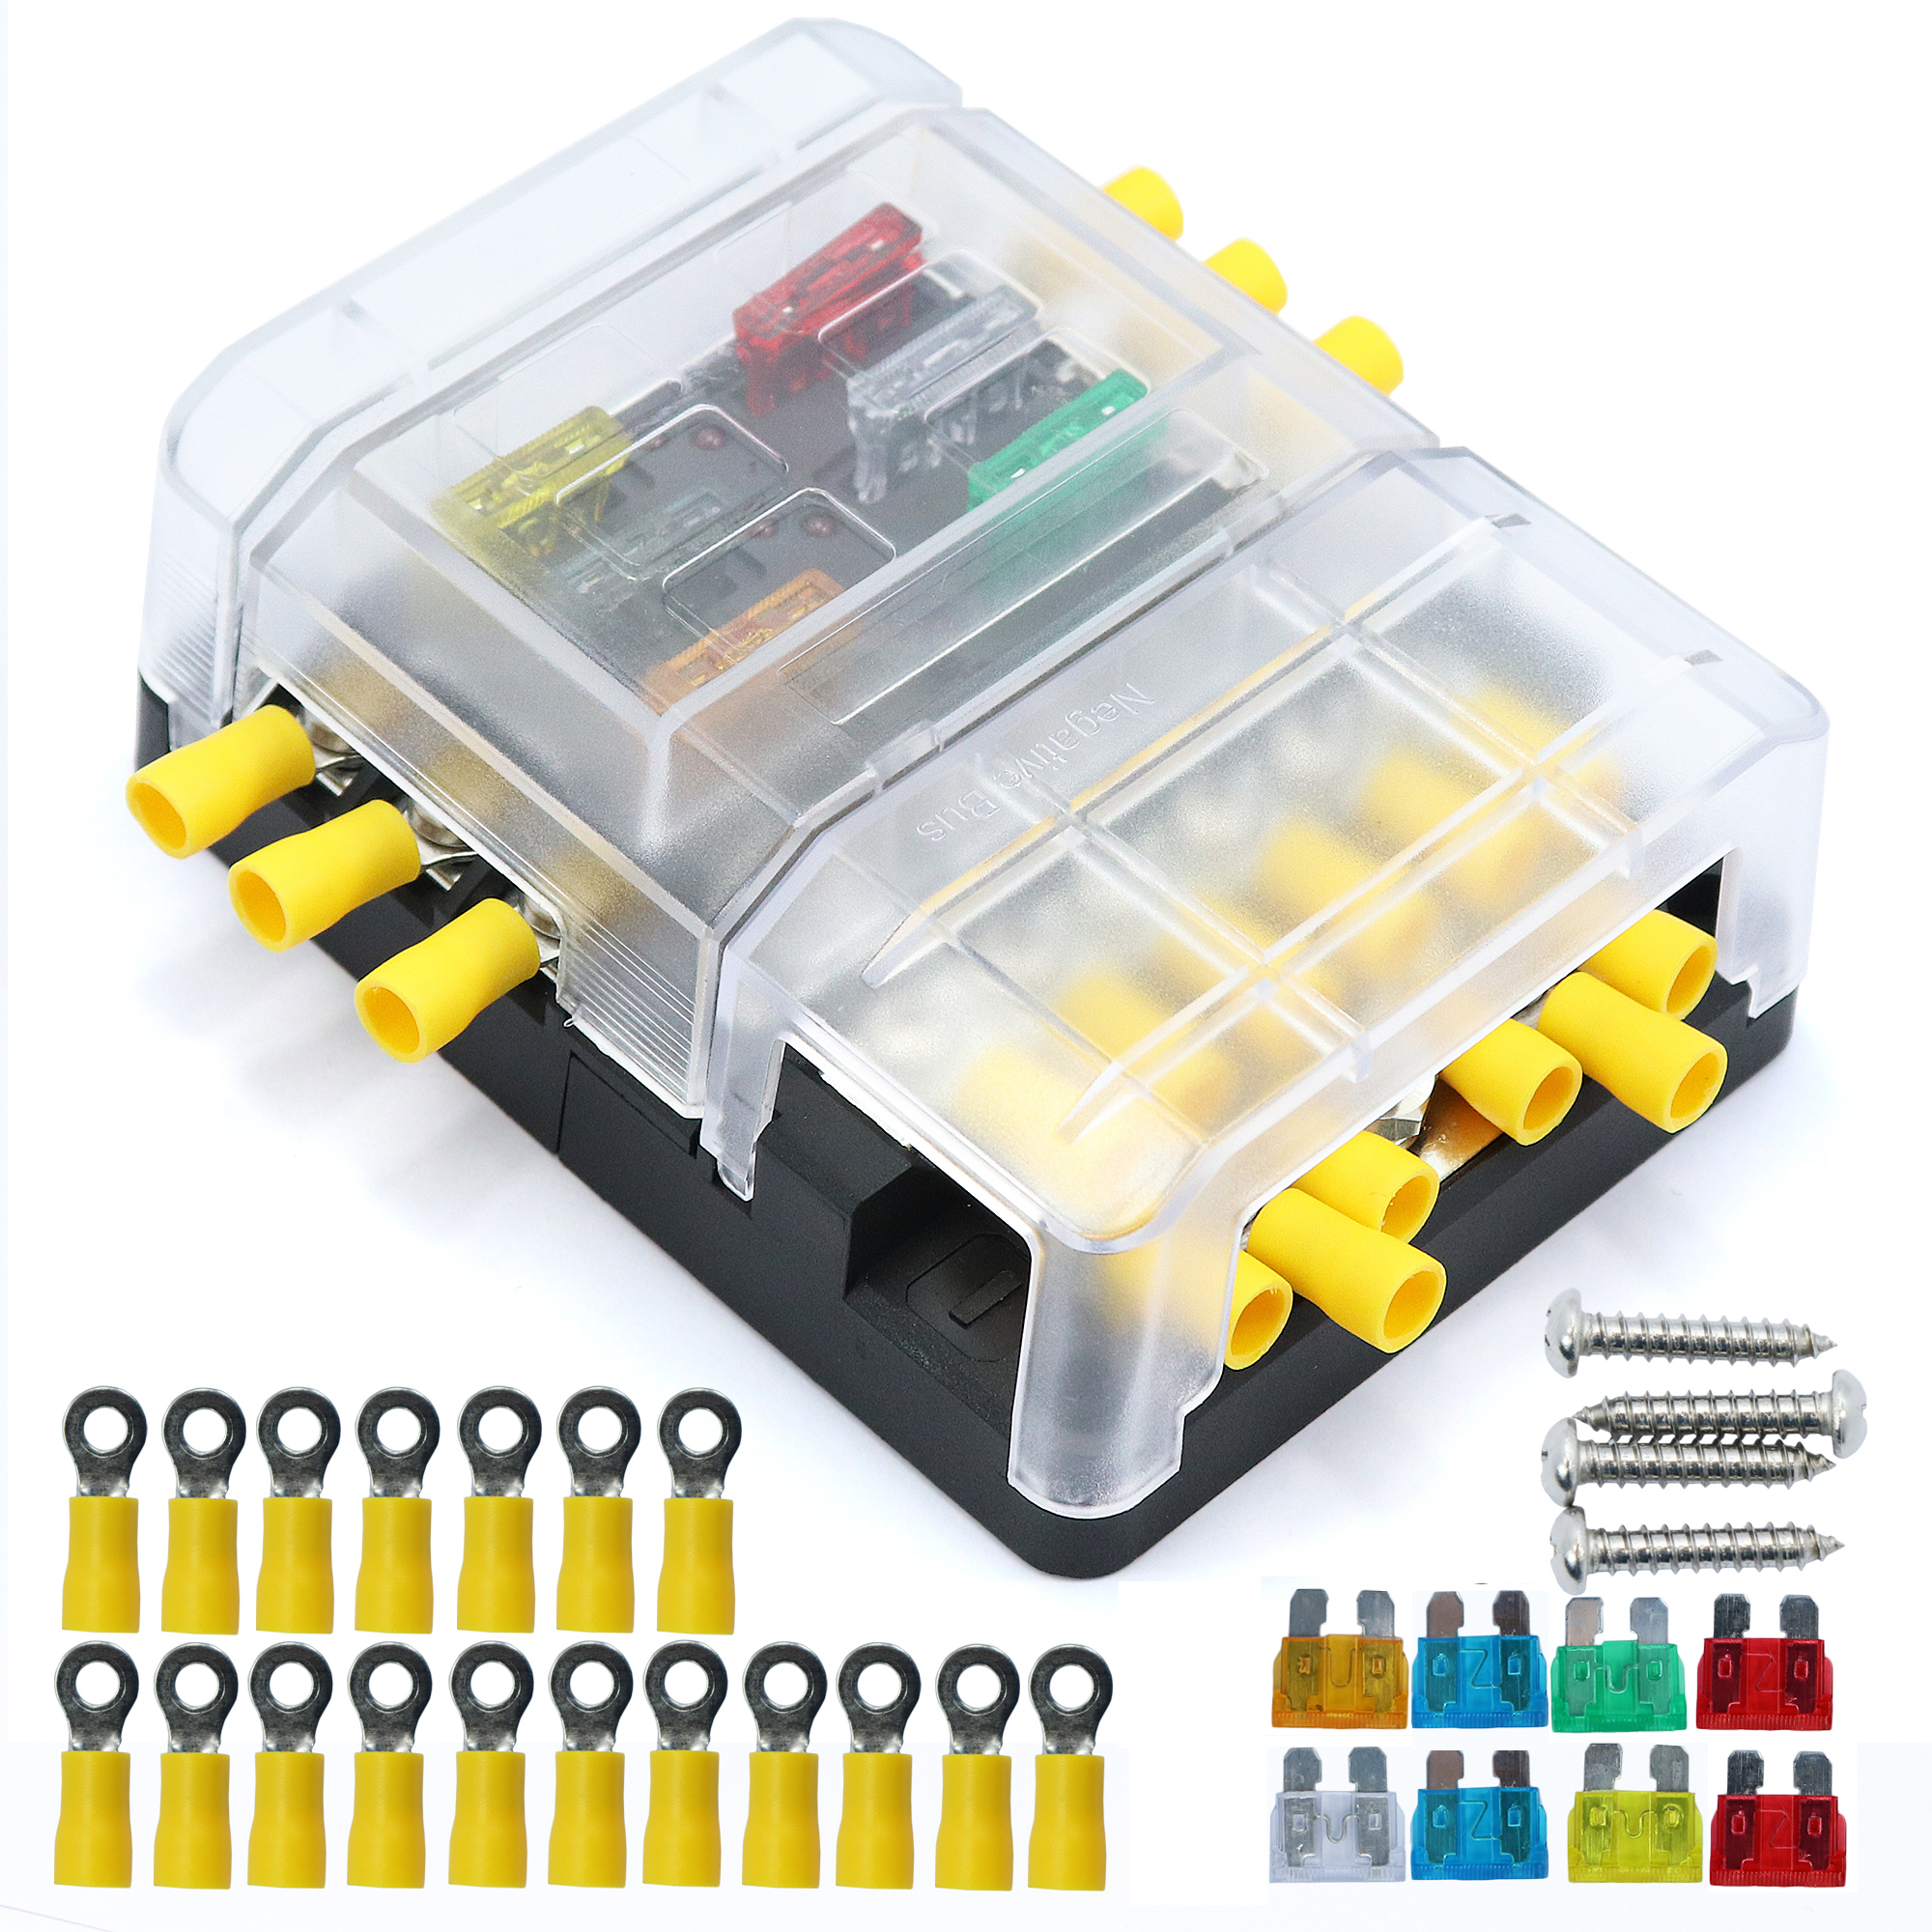 details about car boat 6 way junction box fuses holder terminal kits with waterproof cover Change Fuse Home Fuse Box